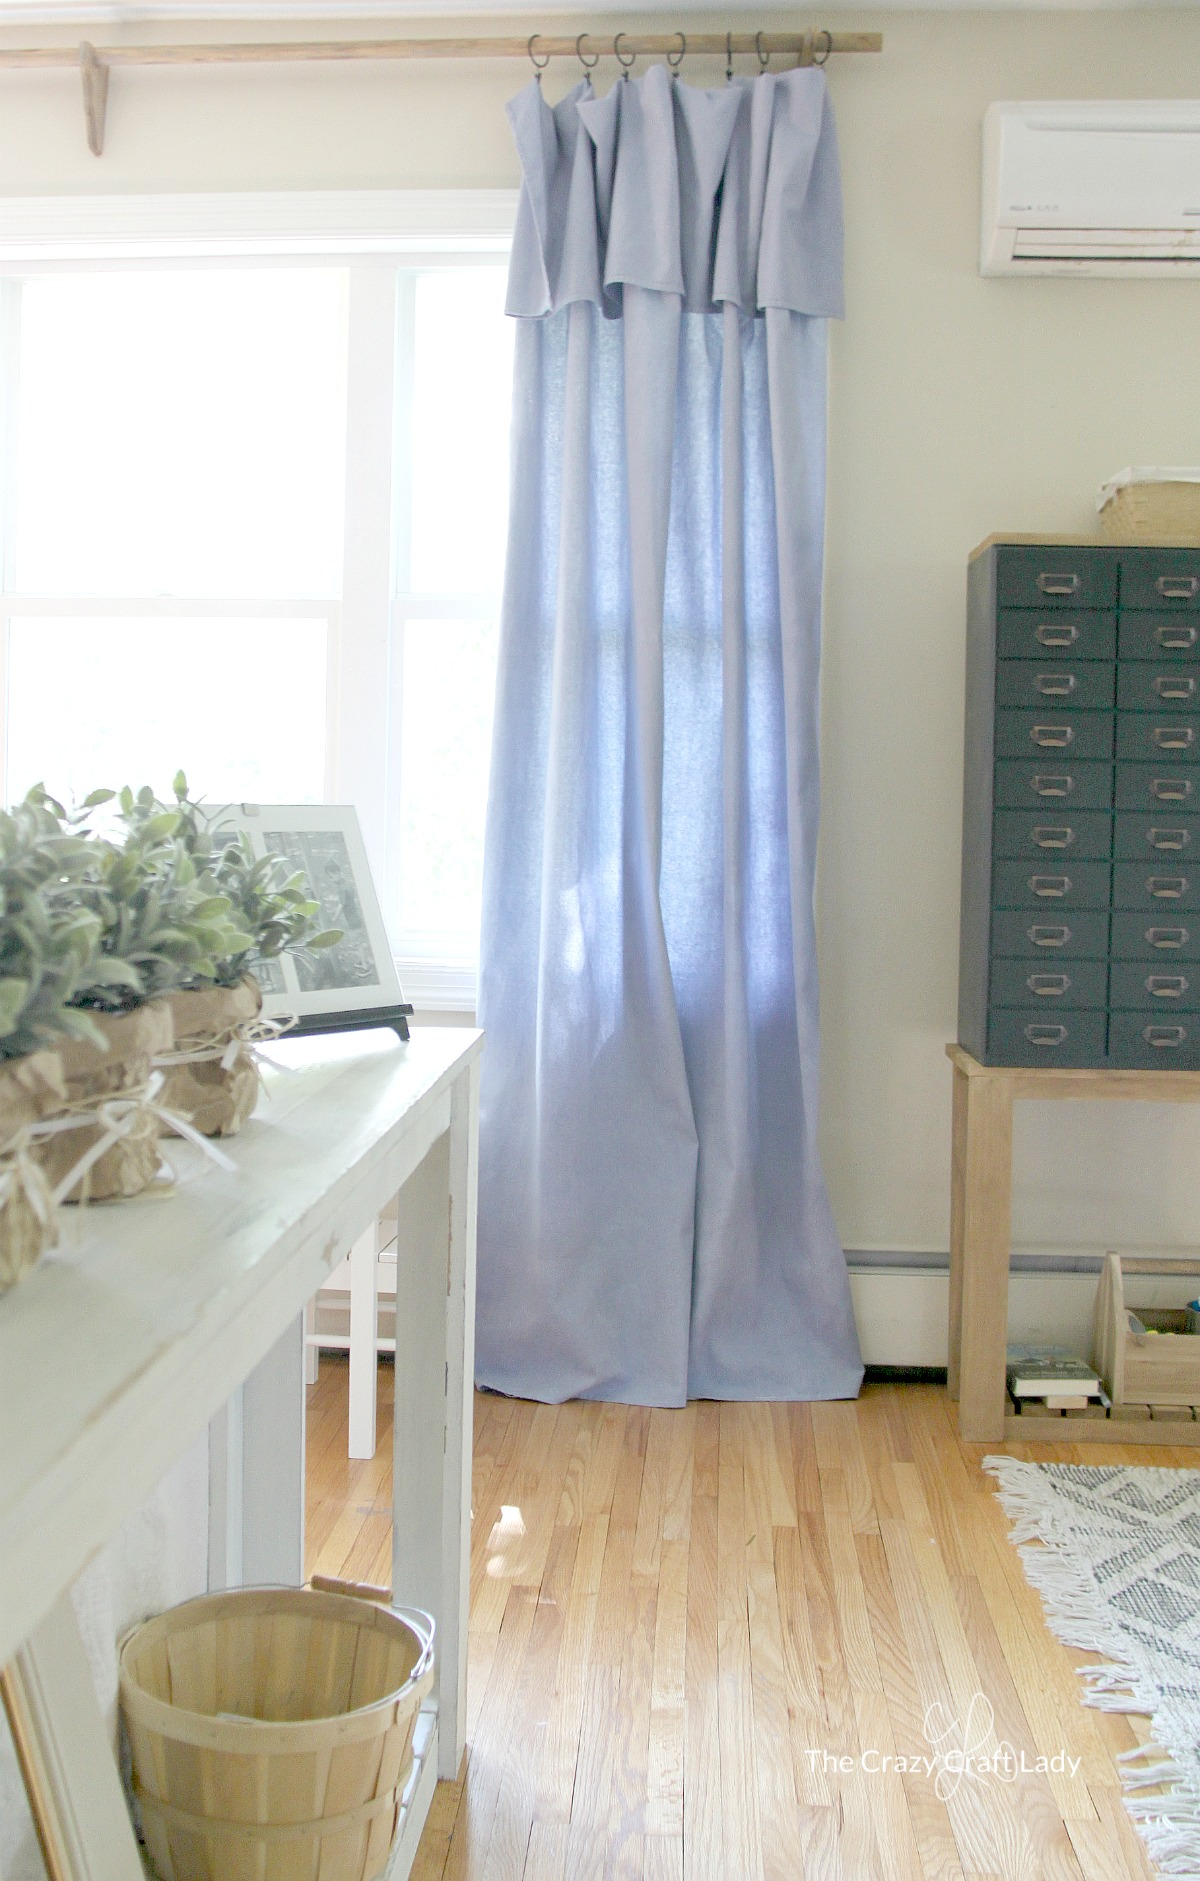 Diy Drop Cloth Curtains Diy No Sew Drop Cloth Curtains And A Cheap Curtain Rod Hack